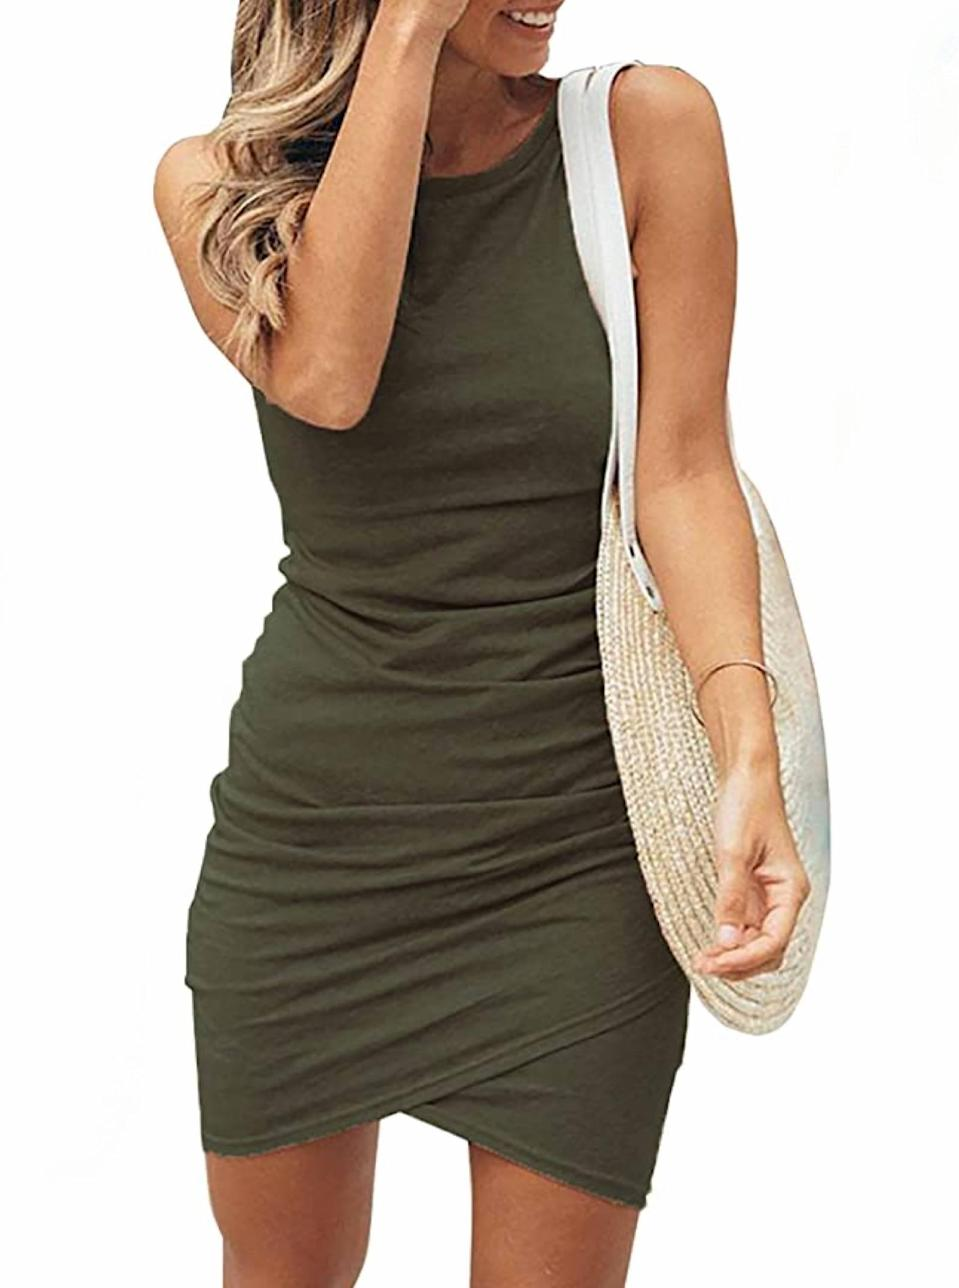 """This ruched mini number is basic in the best way. $9, Amazon. <a href=""""https://www.amazon.com/BTFBM-Casual-Sleeveless-Bodycon-Dresses/dp/B08CTWJGFC/"""" rel=""""nofollow noopener"""" target=""""_blank"""" data-ylk=""""slk:Get it now!"""" class=""""link rapid-noclick-resp"""">Get it now!</a>"""